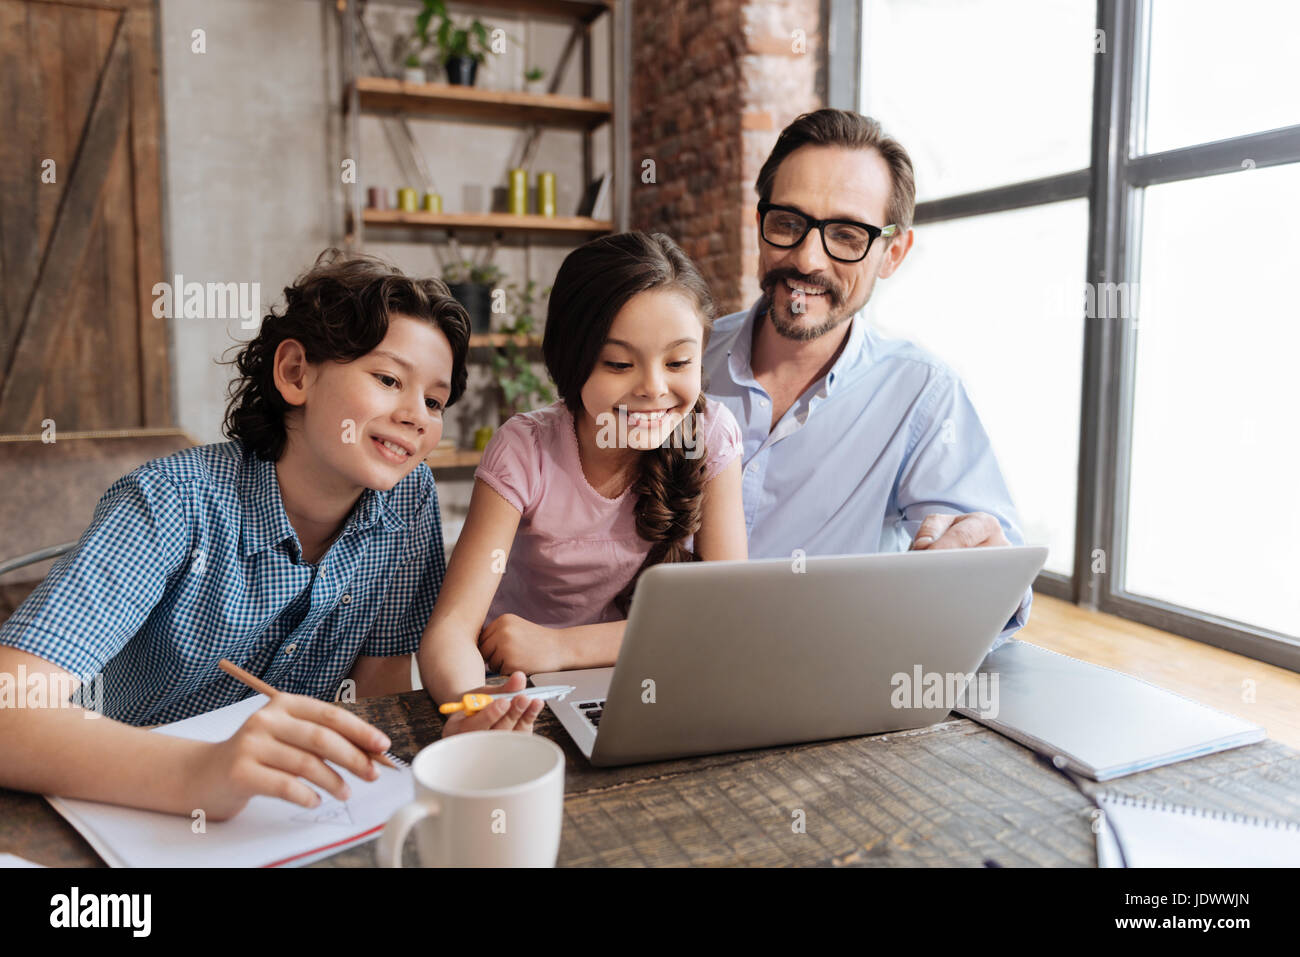 Upbeat family watching an educational video - Stock Image